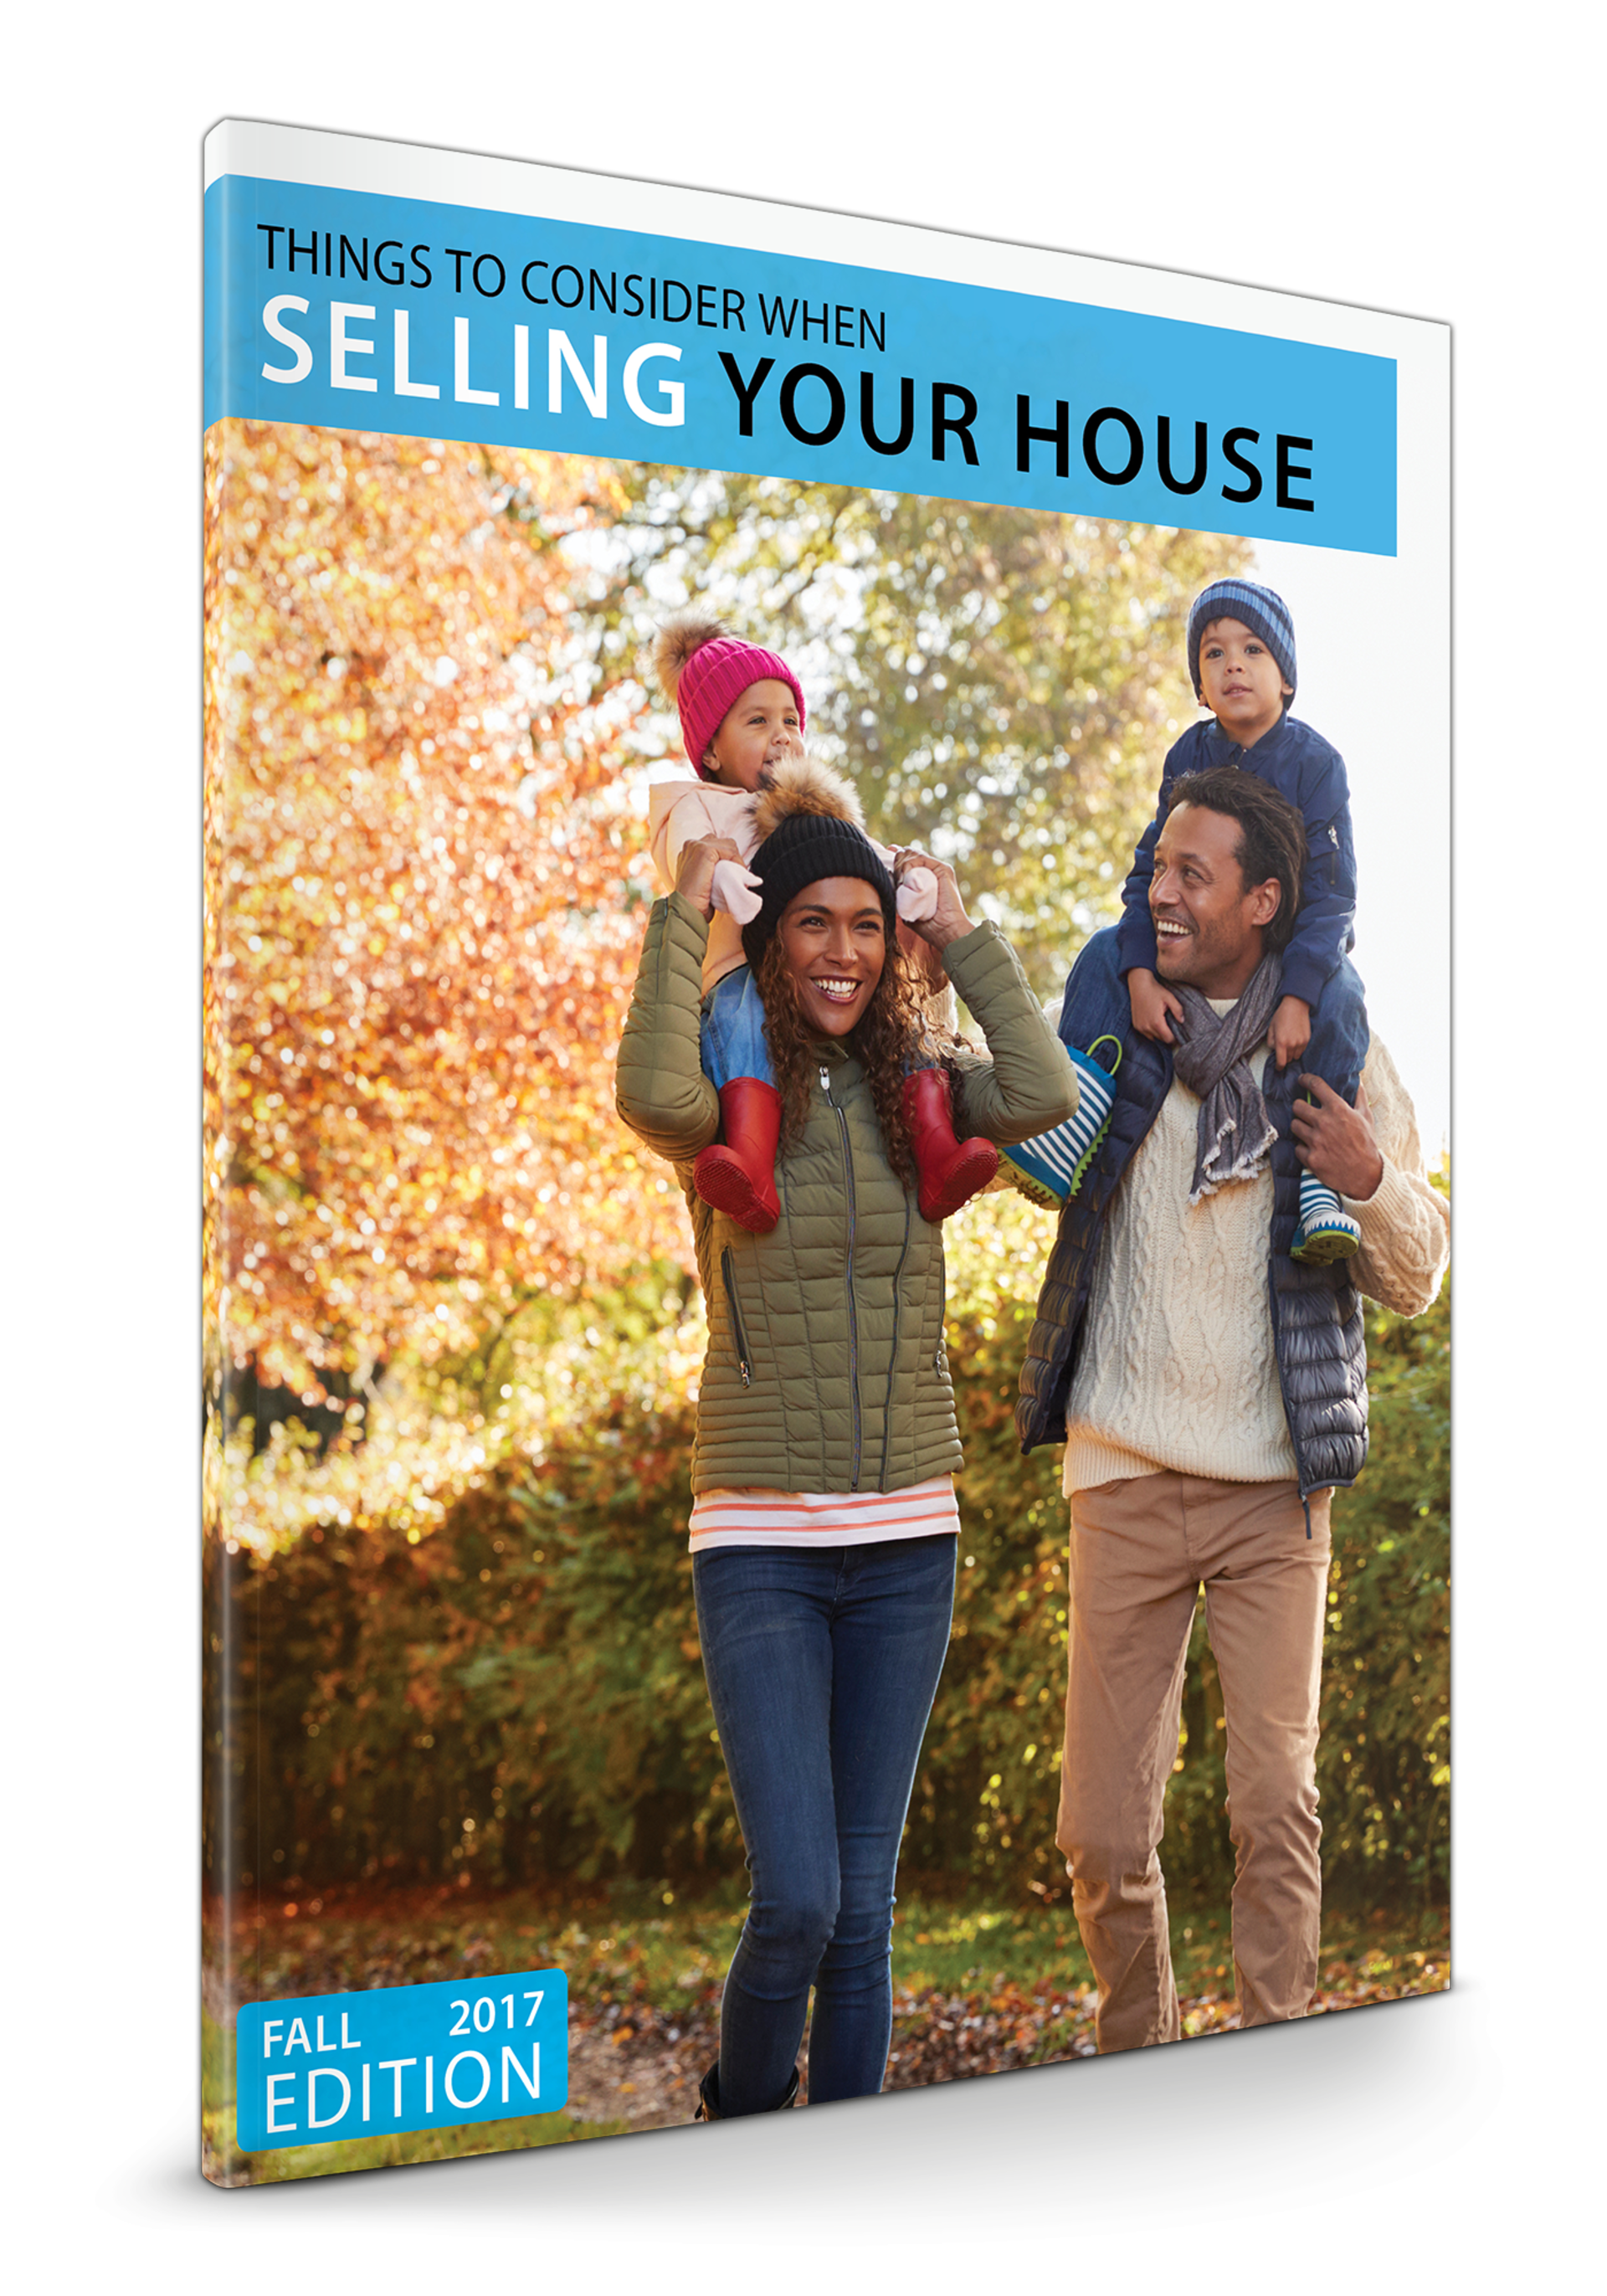 Mike Russell & Associates Fall 2017 Home Sellers Guide is Now Available